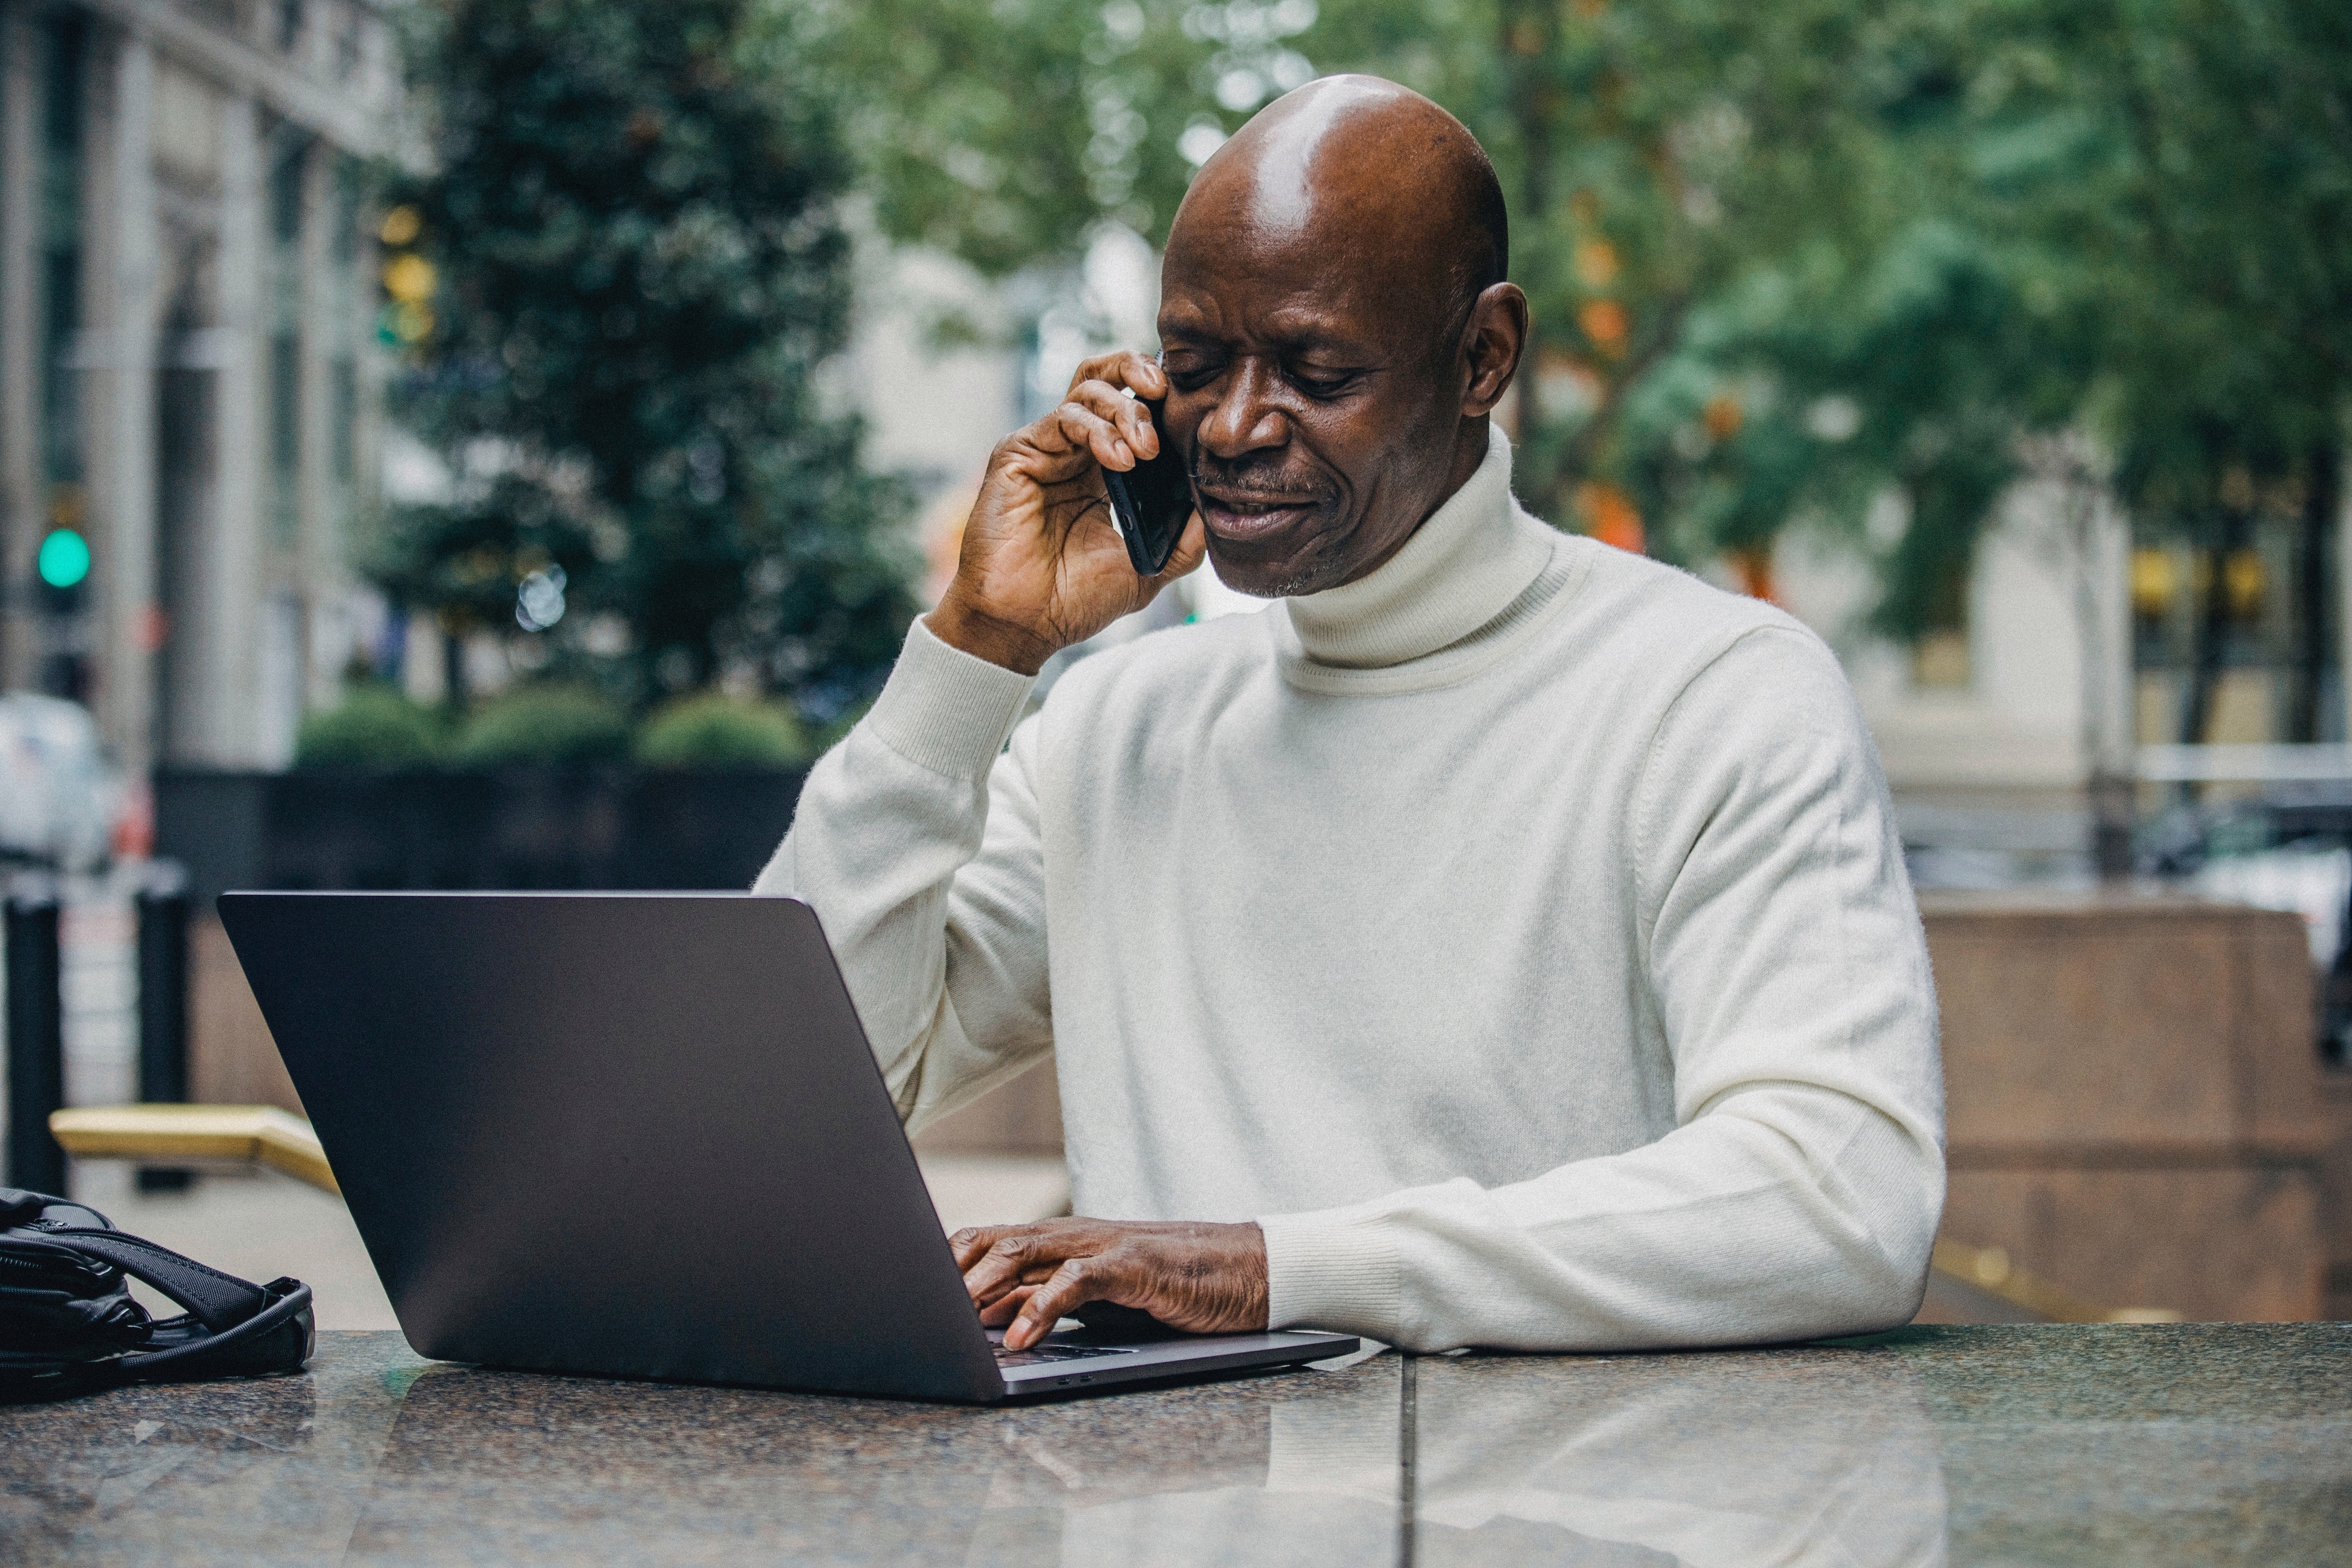 An older man with dark skin and a moustache is talking on a phone. He is sitting at an outdoor table looking at his laptop in a city square. There are buildings, people and trees in the background.